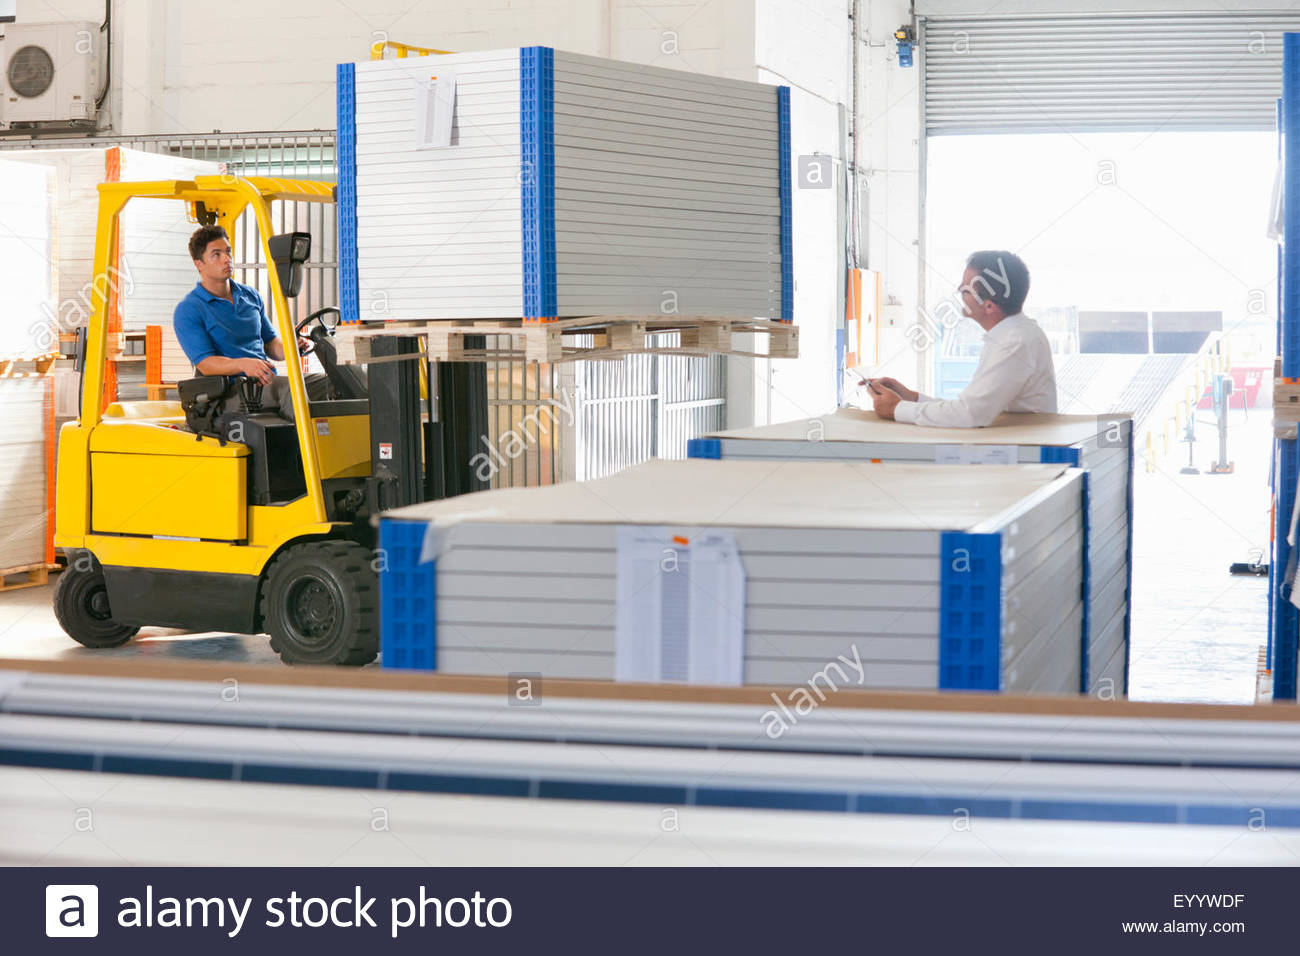 Businessman supervising forklift truck driver in solar panel factory warehouse - Stock Image